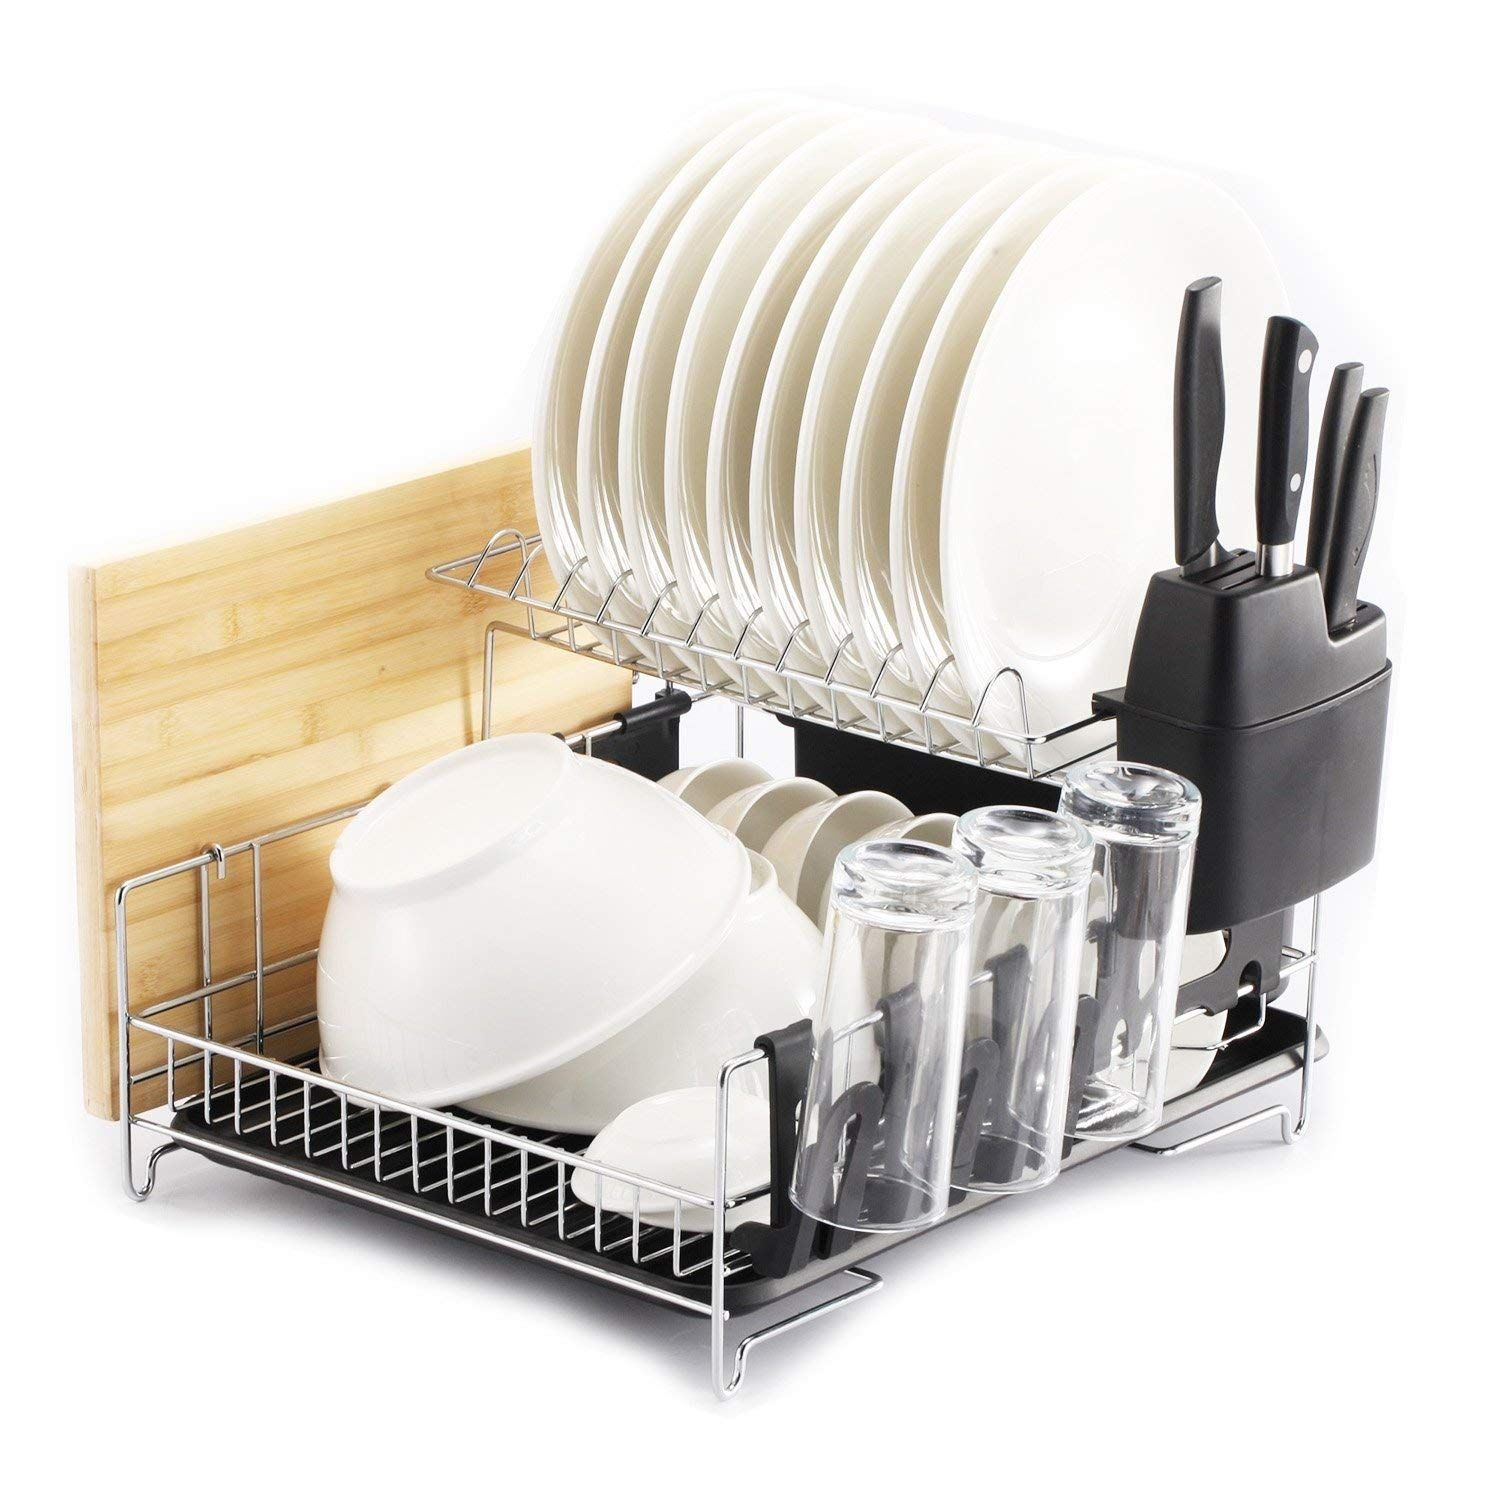 Top 10 Best Dish Drying Racks In 2020 With Images Dish Rack Drying Dish Racks Dish Drainers